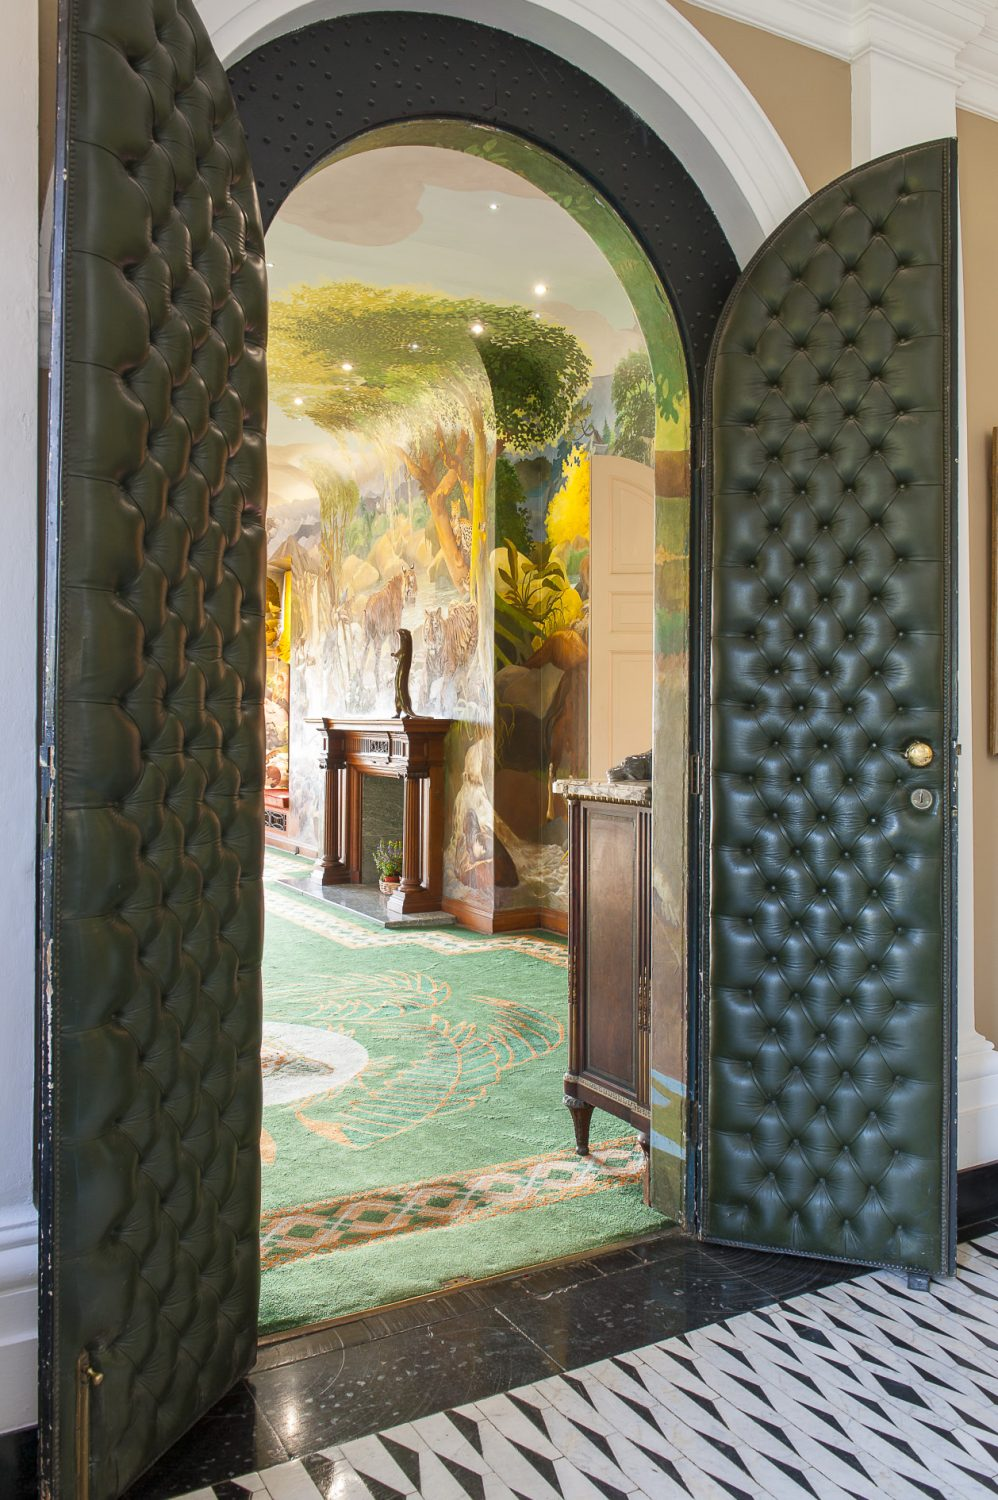 A pair of soft leather-covered doors opens to reveal the Spencer Roberts room, where many of Port Lympne's wedding receptions take place